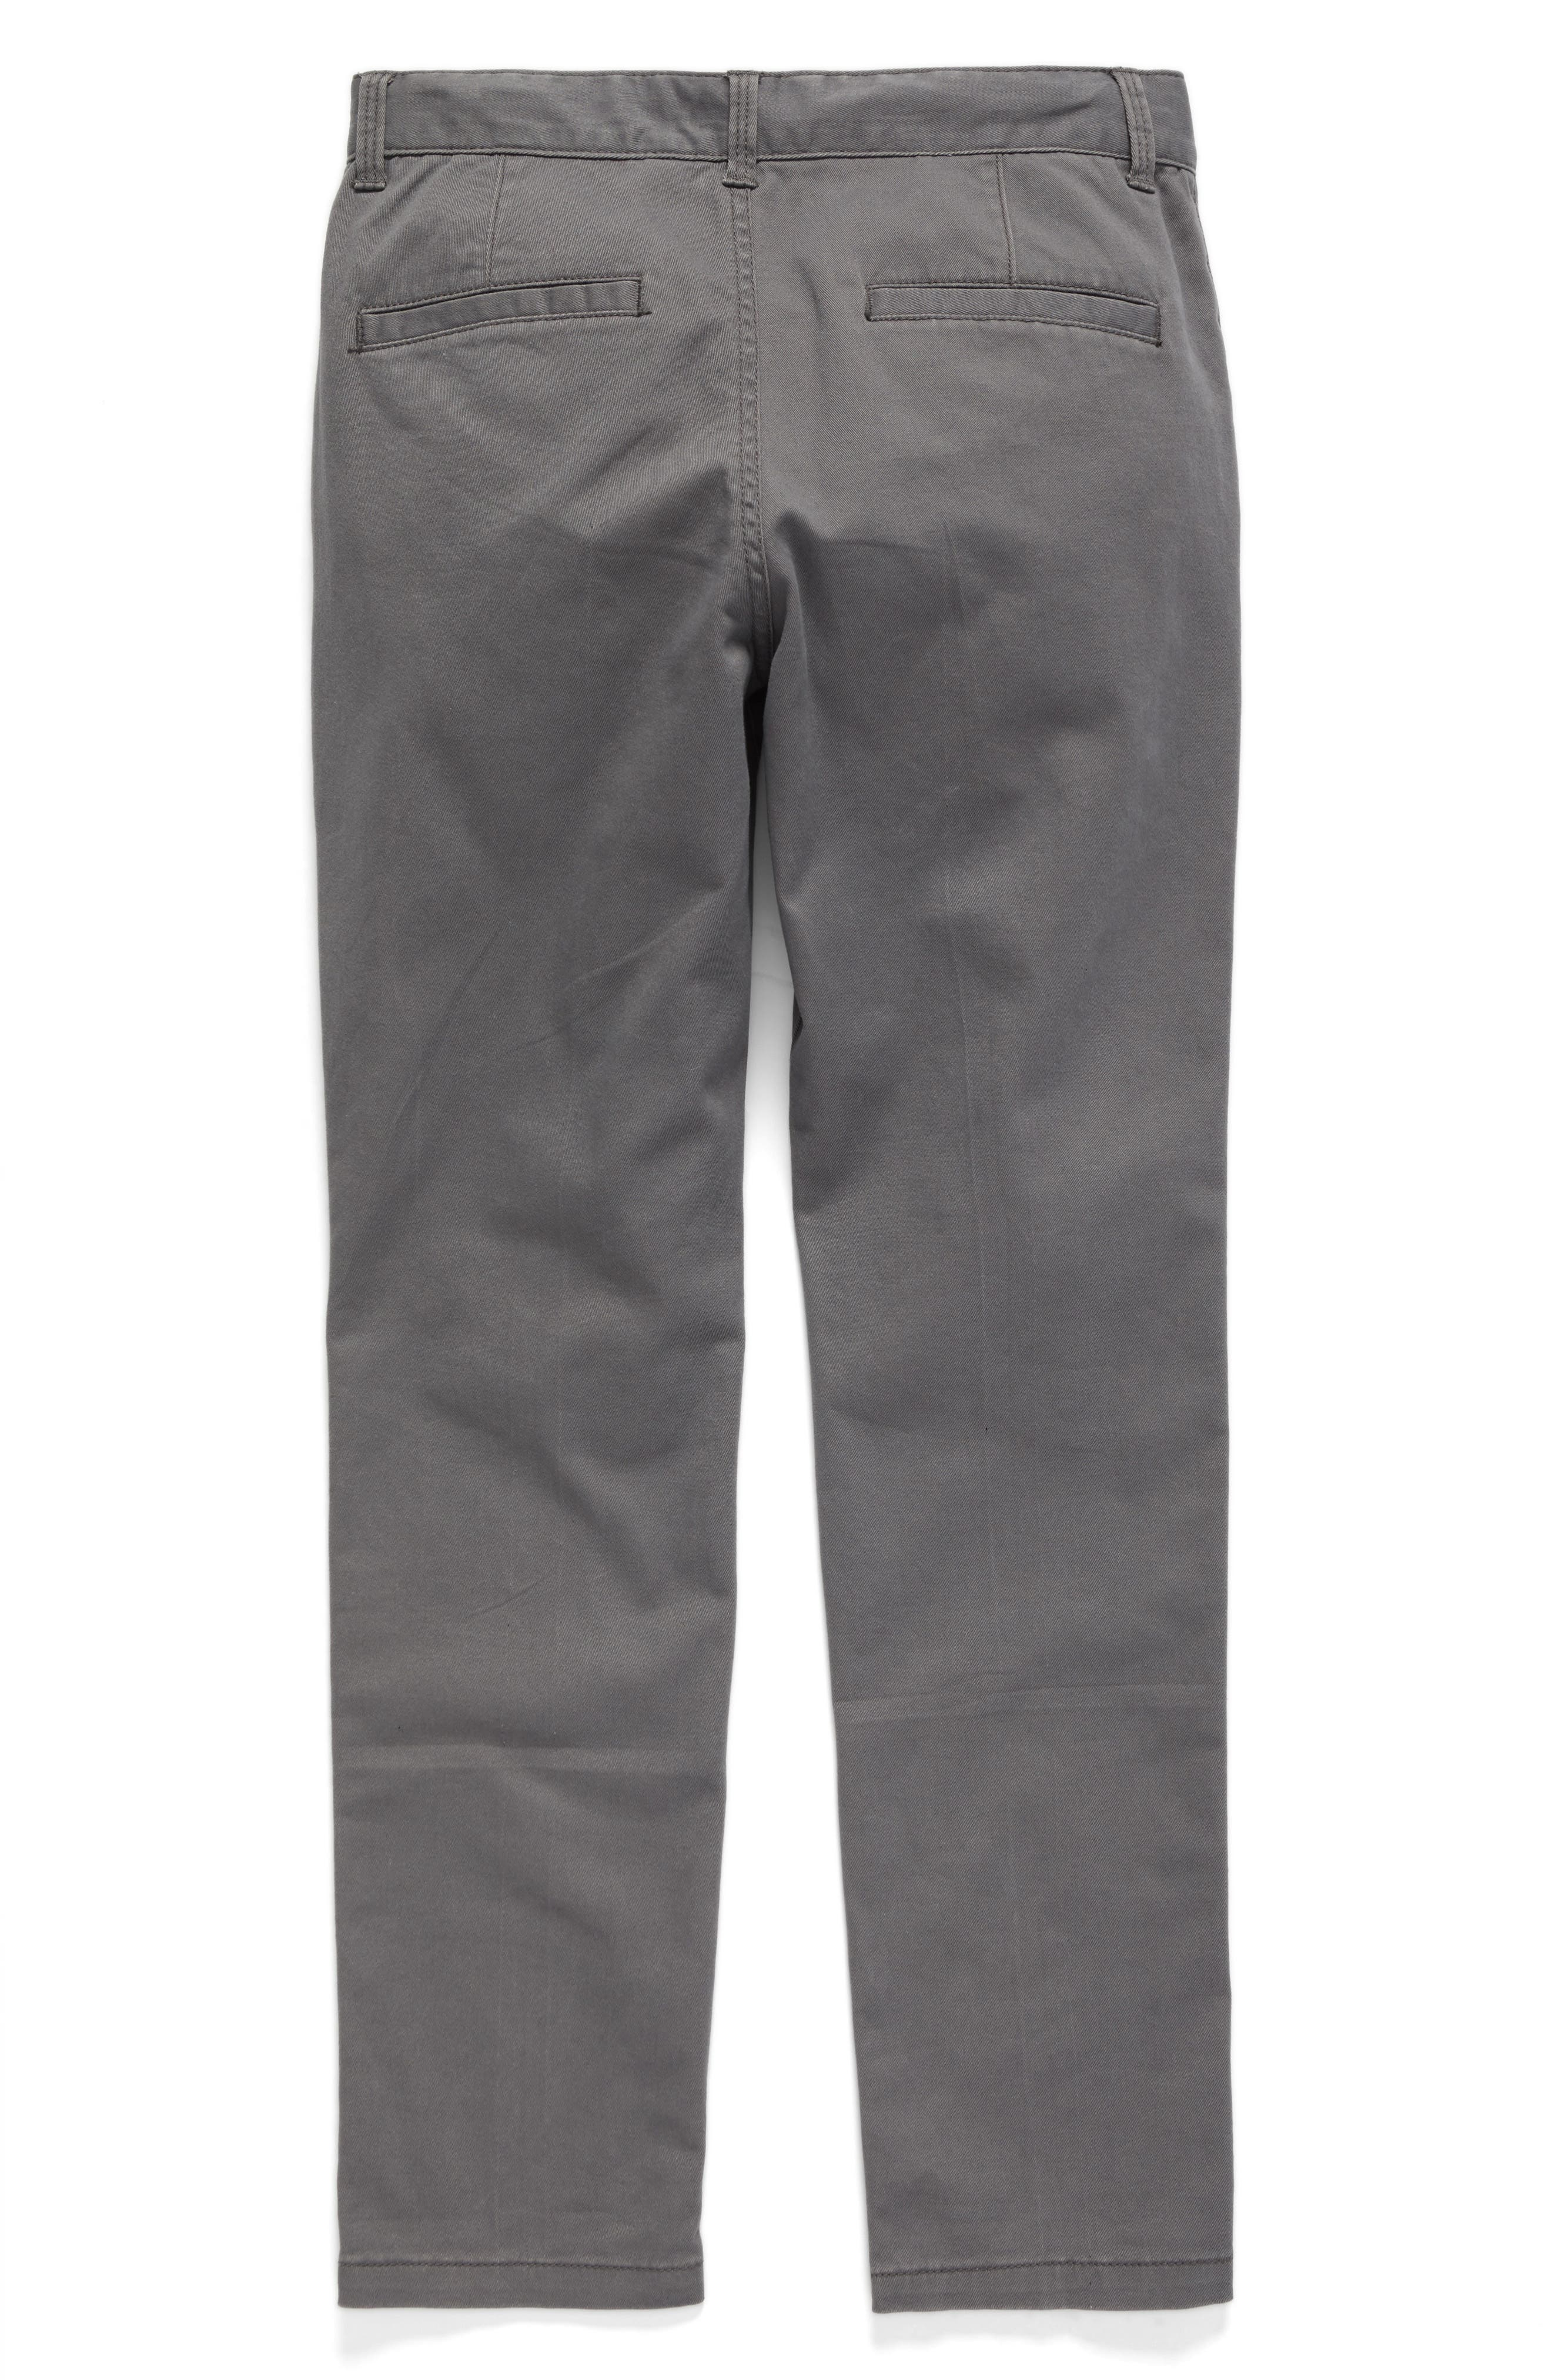 Chino Pants,                             Alternate thumbnail 2, color,                             Grey Frost